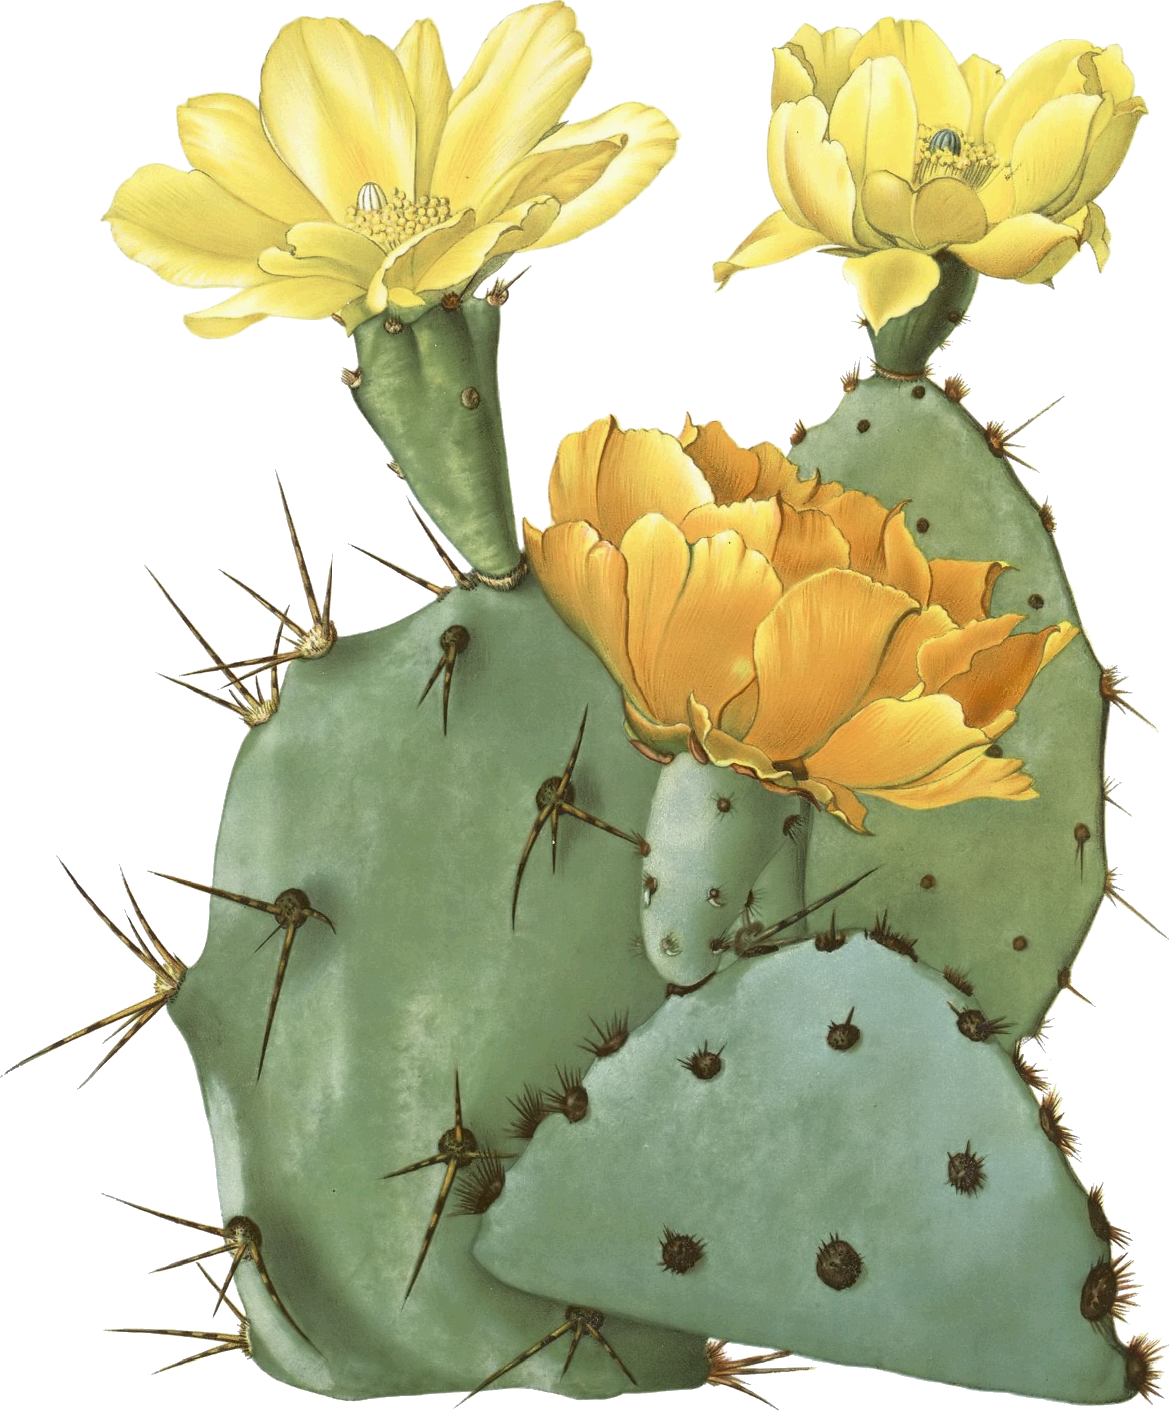 Cactus flower clipart image download Opuntia laevis (Spineless Prickly Pear, Tulip Pricklypear) | tattoos ... image download